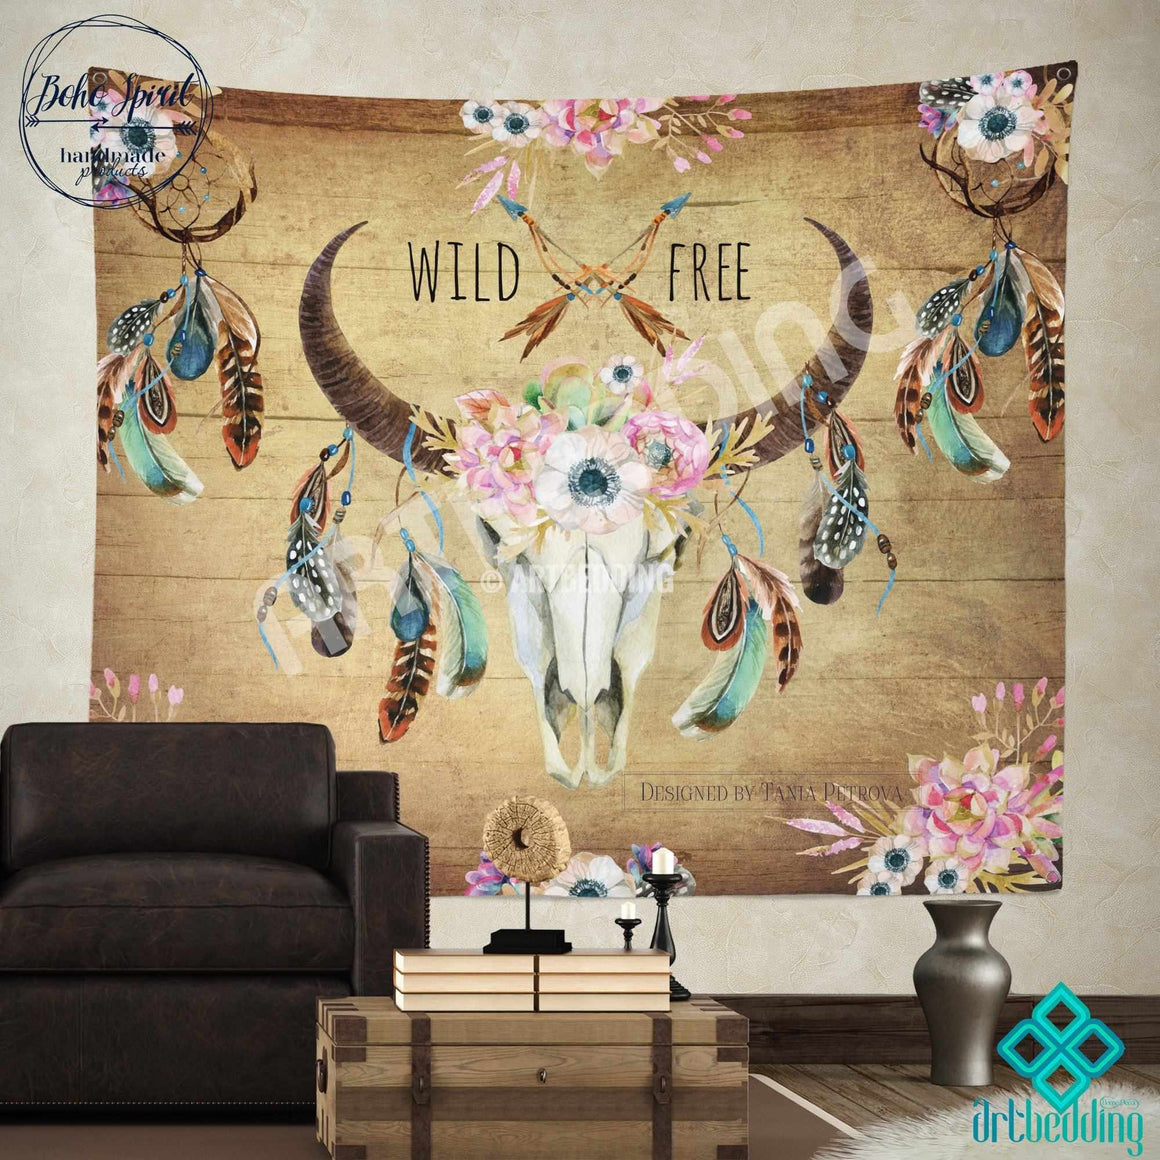 Buffalo Totem Dreamcatcher wall tapestry, Wartercolor Buffalo Skull wall hanging, Buffalo Head hand drawn wildflowers wall art print, Feathers boho wall tapestries